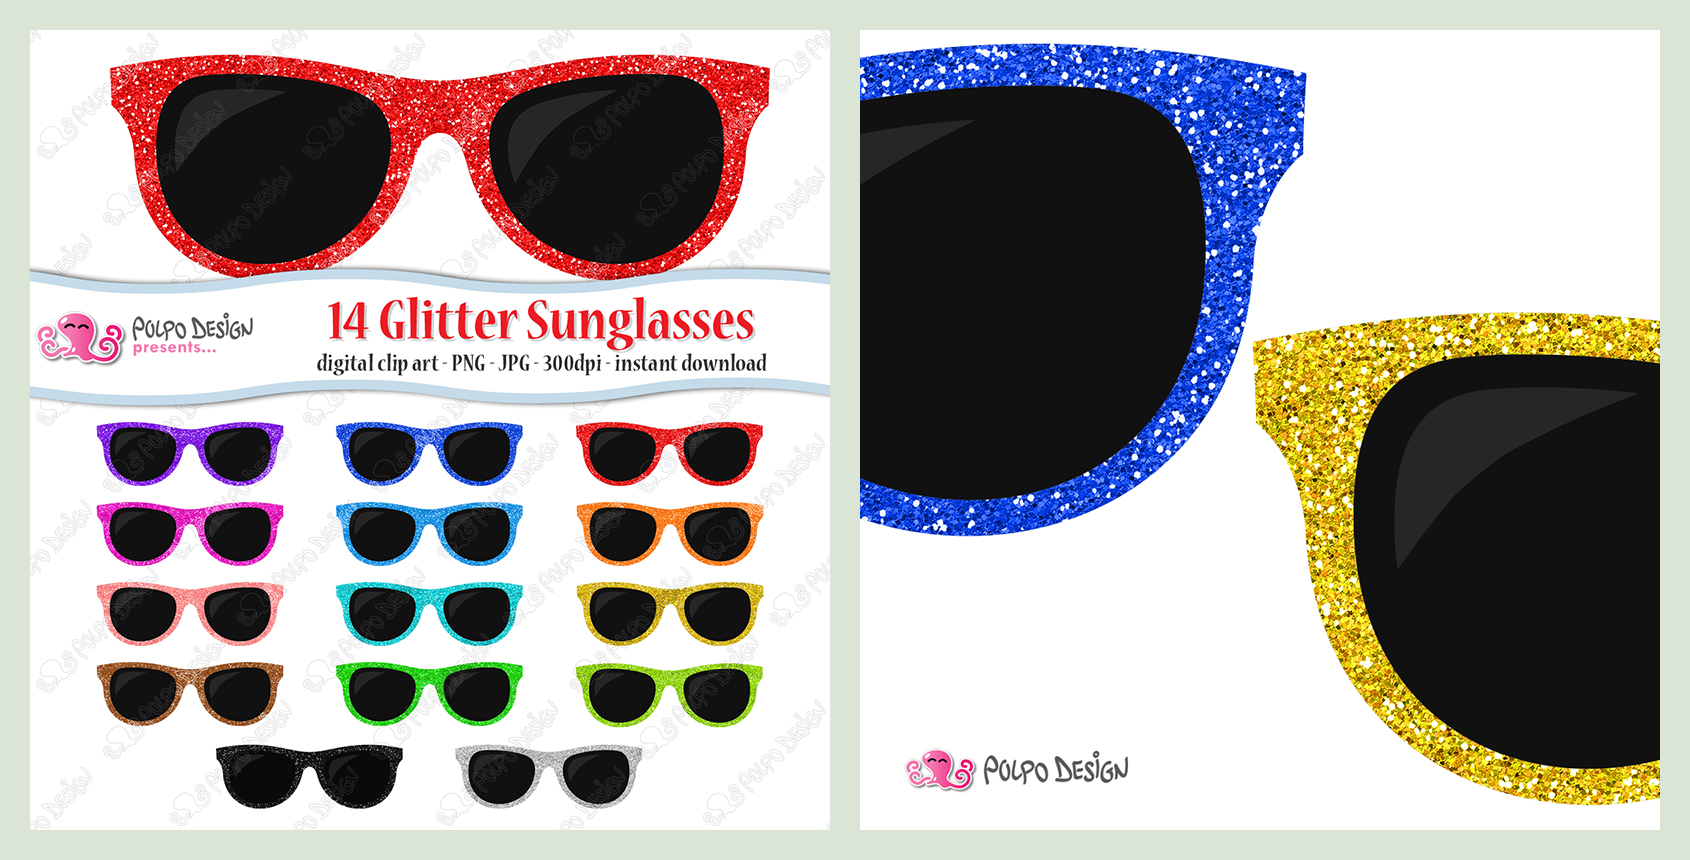 Sunglasses clipart glitter. Colorful by polpodesign on